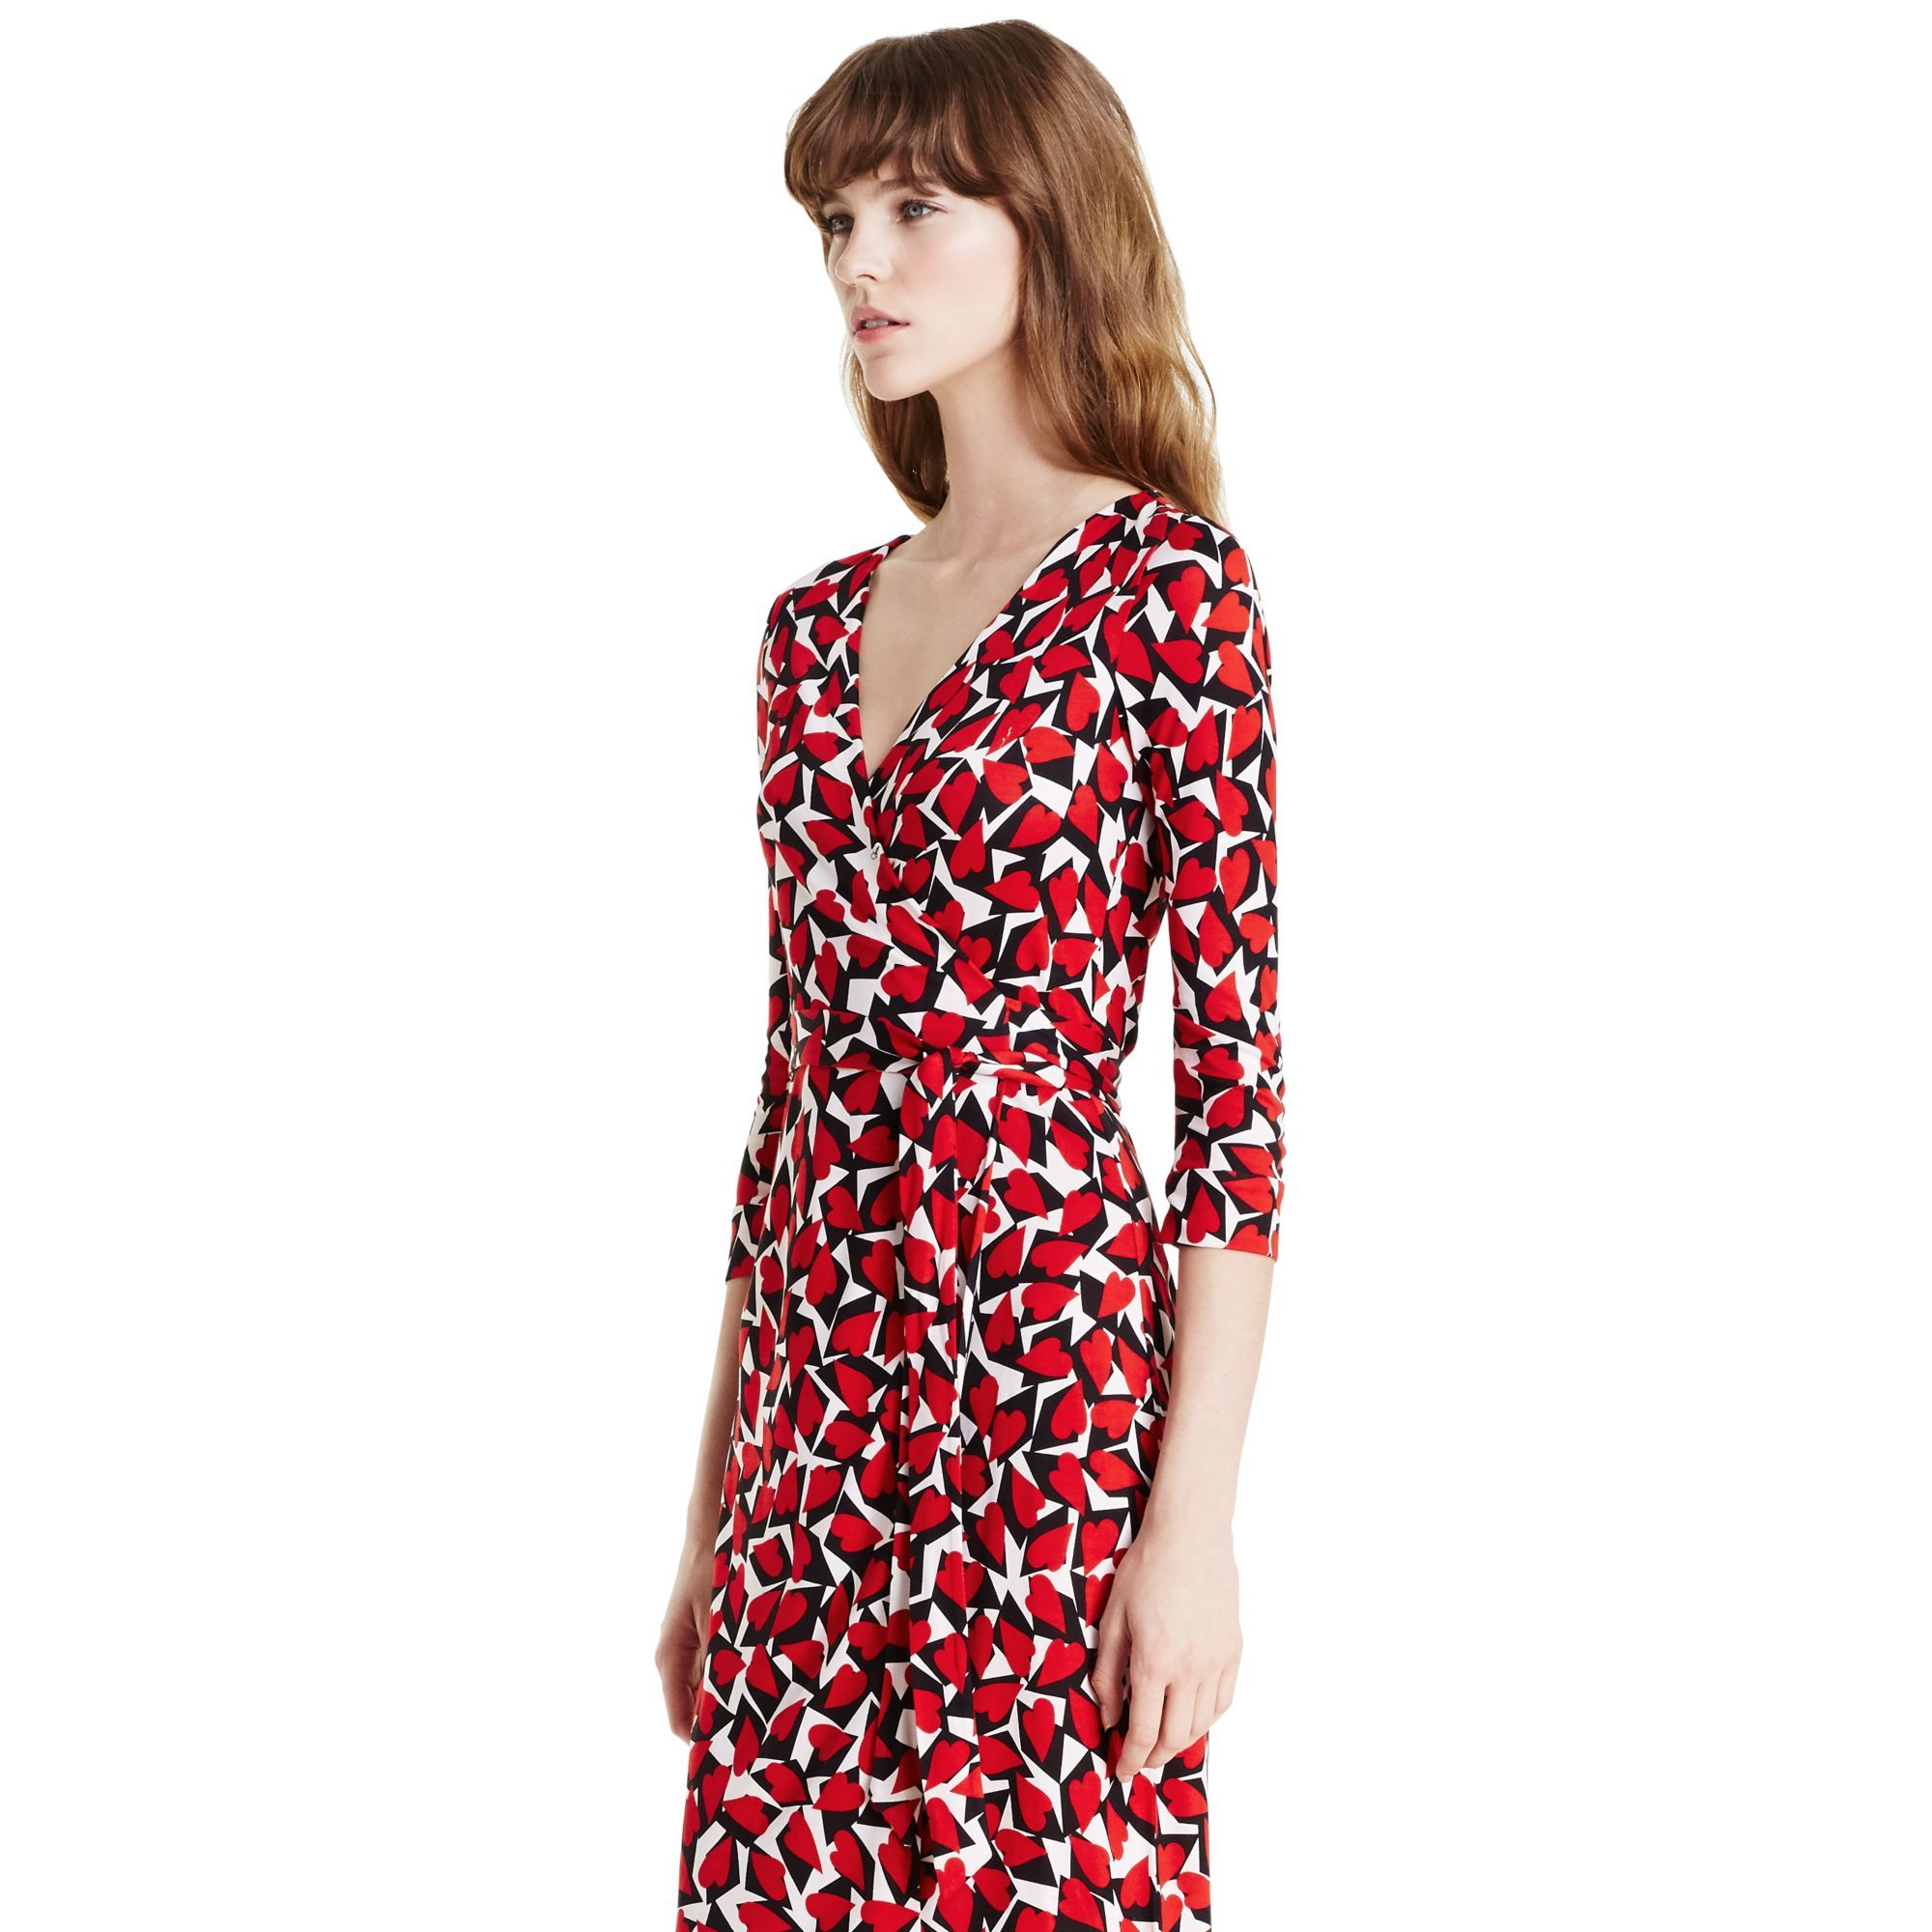 The wrap dress dvf - Image Result For Dvf Wrap Dress